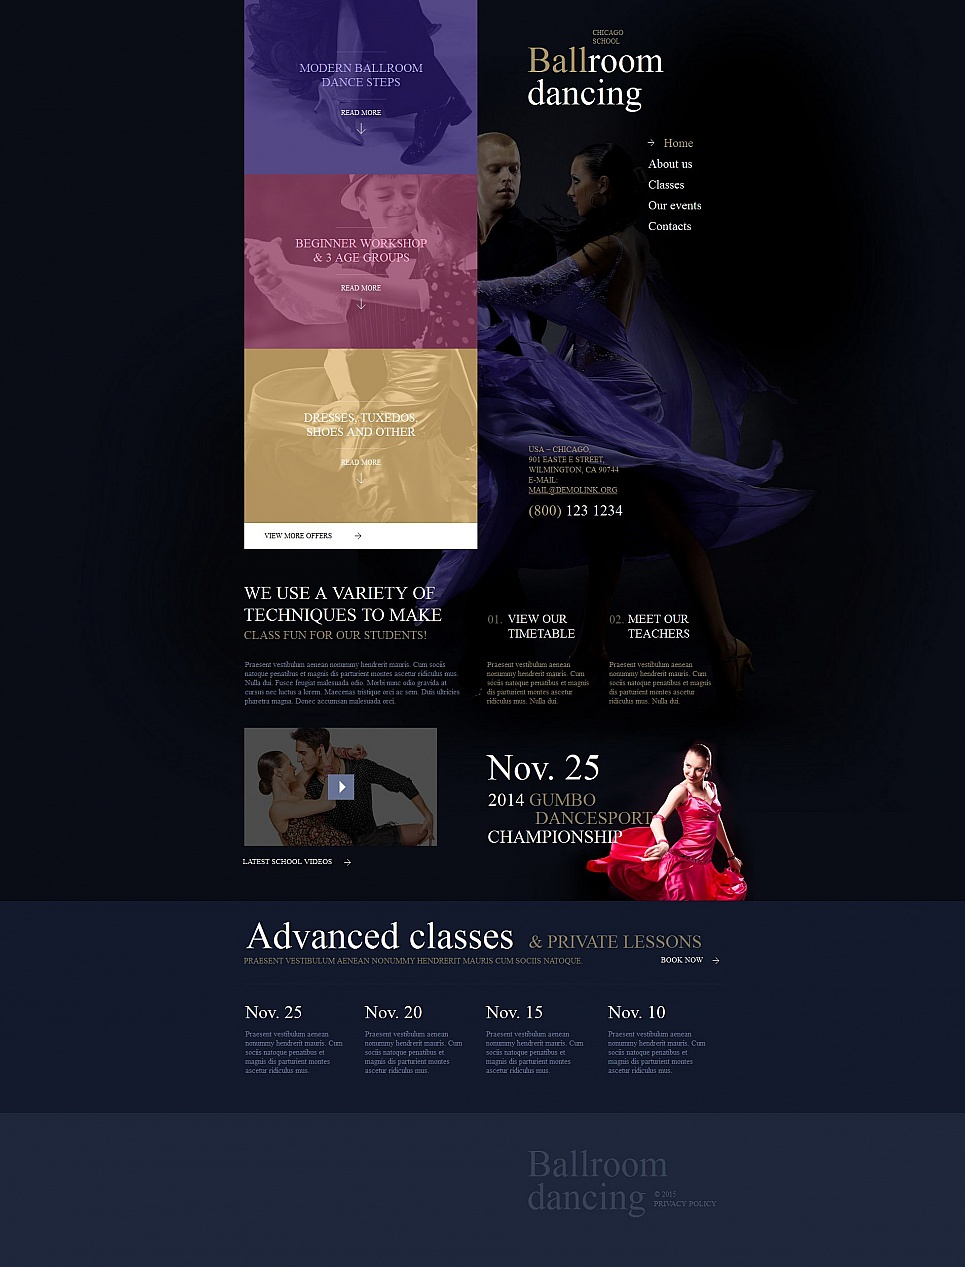 Dancing classes site design